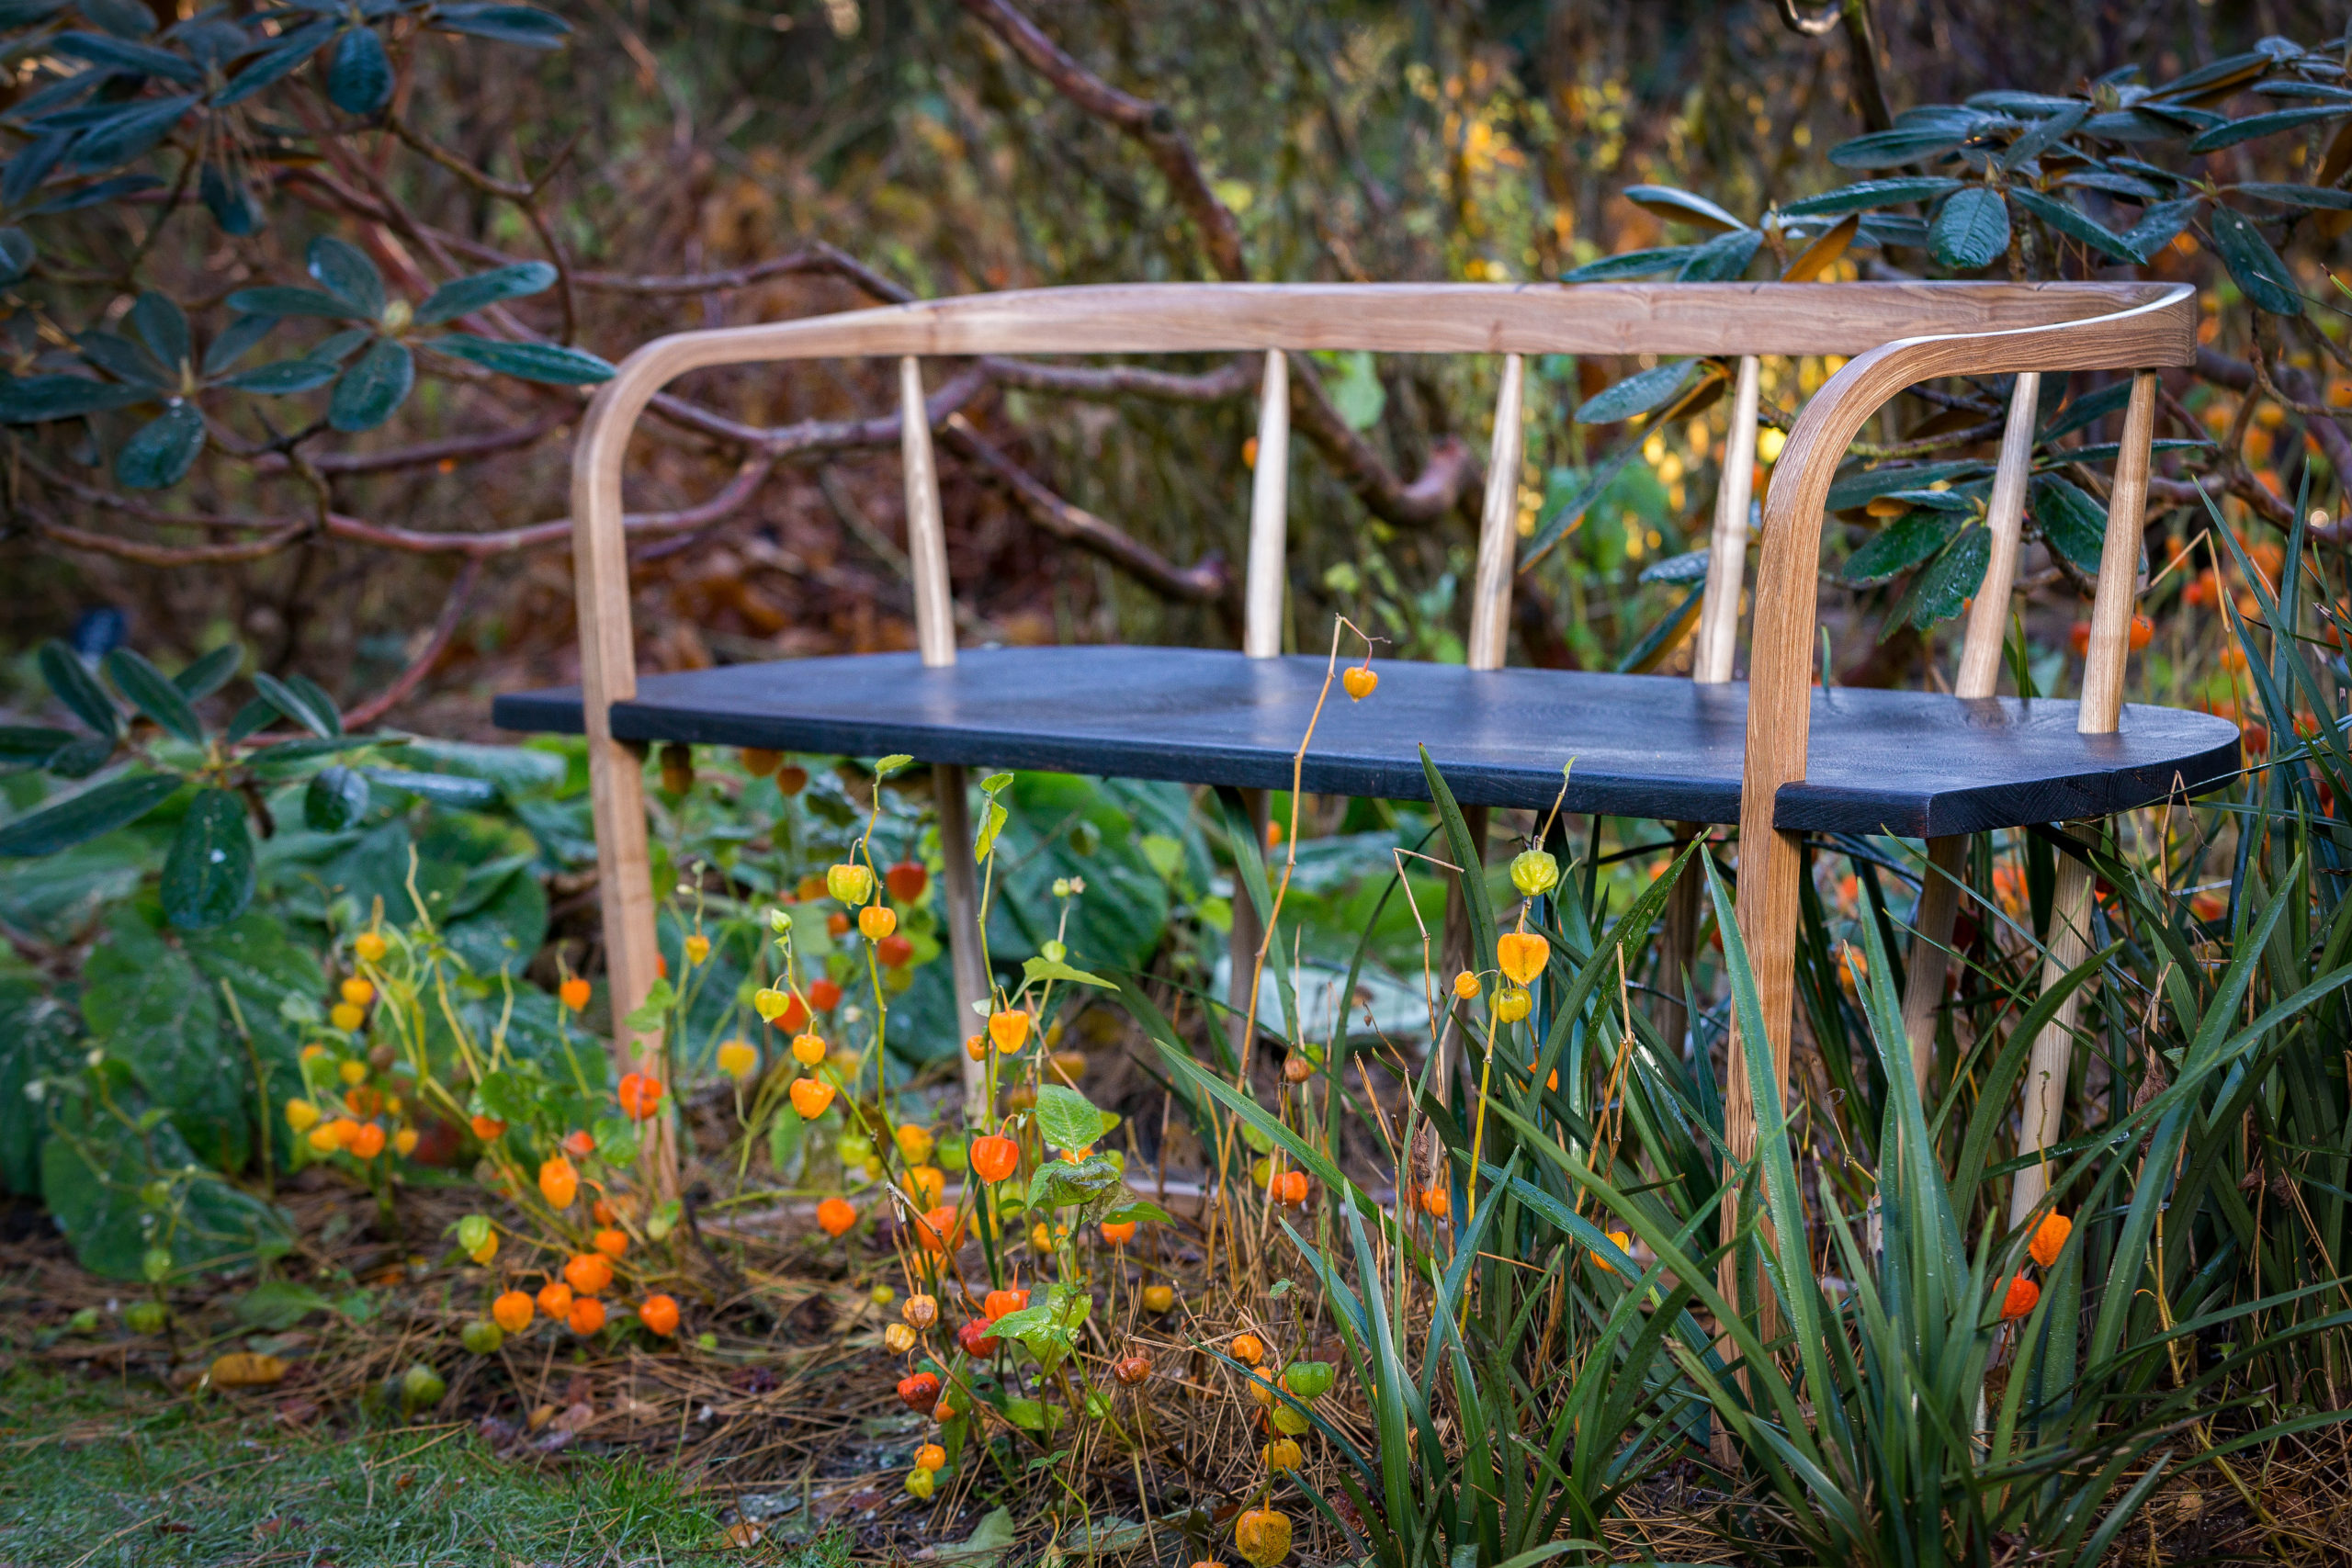 Angus Ross' Resilience Bench sits outside in the Royal Botanic Garden Edinburgh, amongst brightly coloured Physalis and in front of a large, leafy Rhododendron tree.